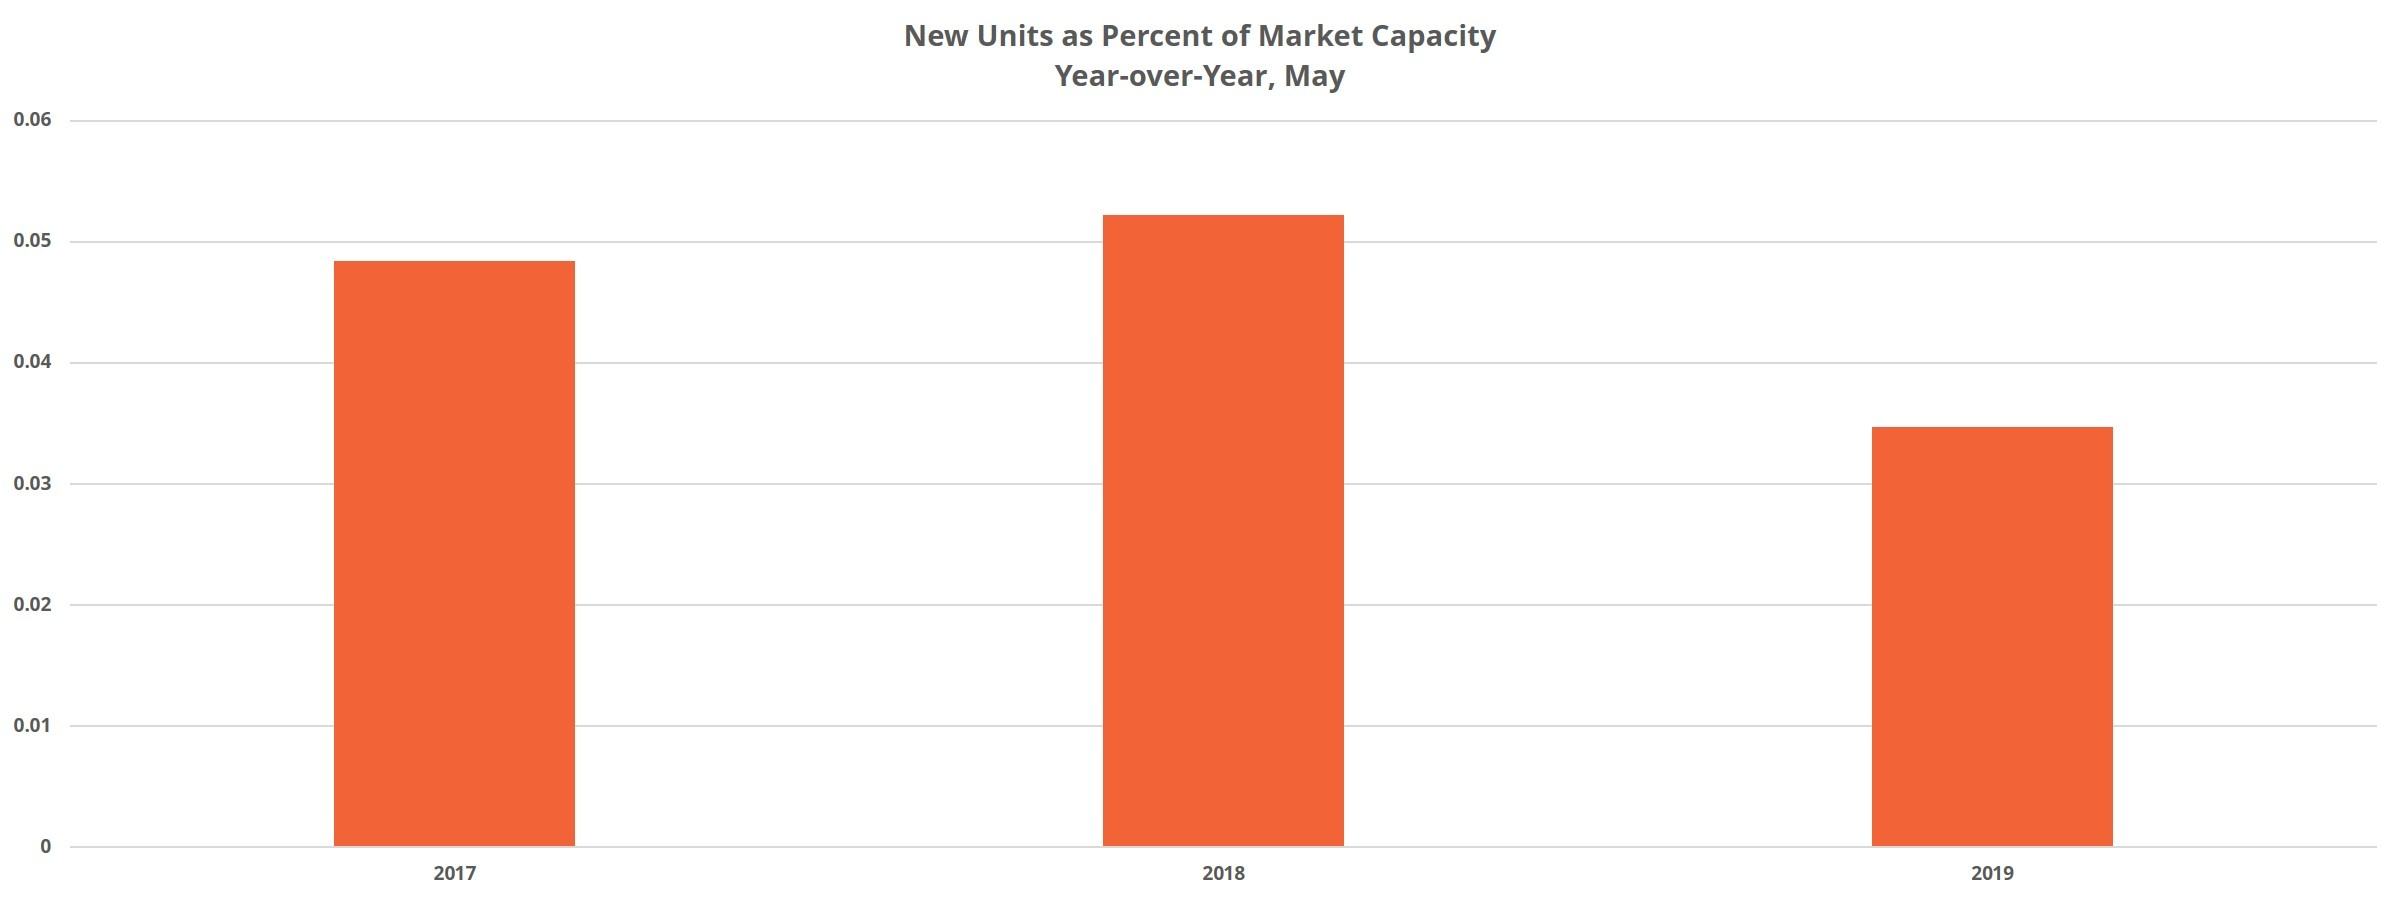 New Units as Percent of Market Capacity in Denver